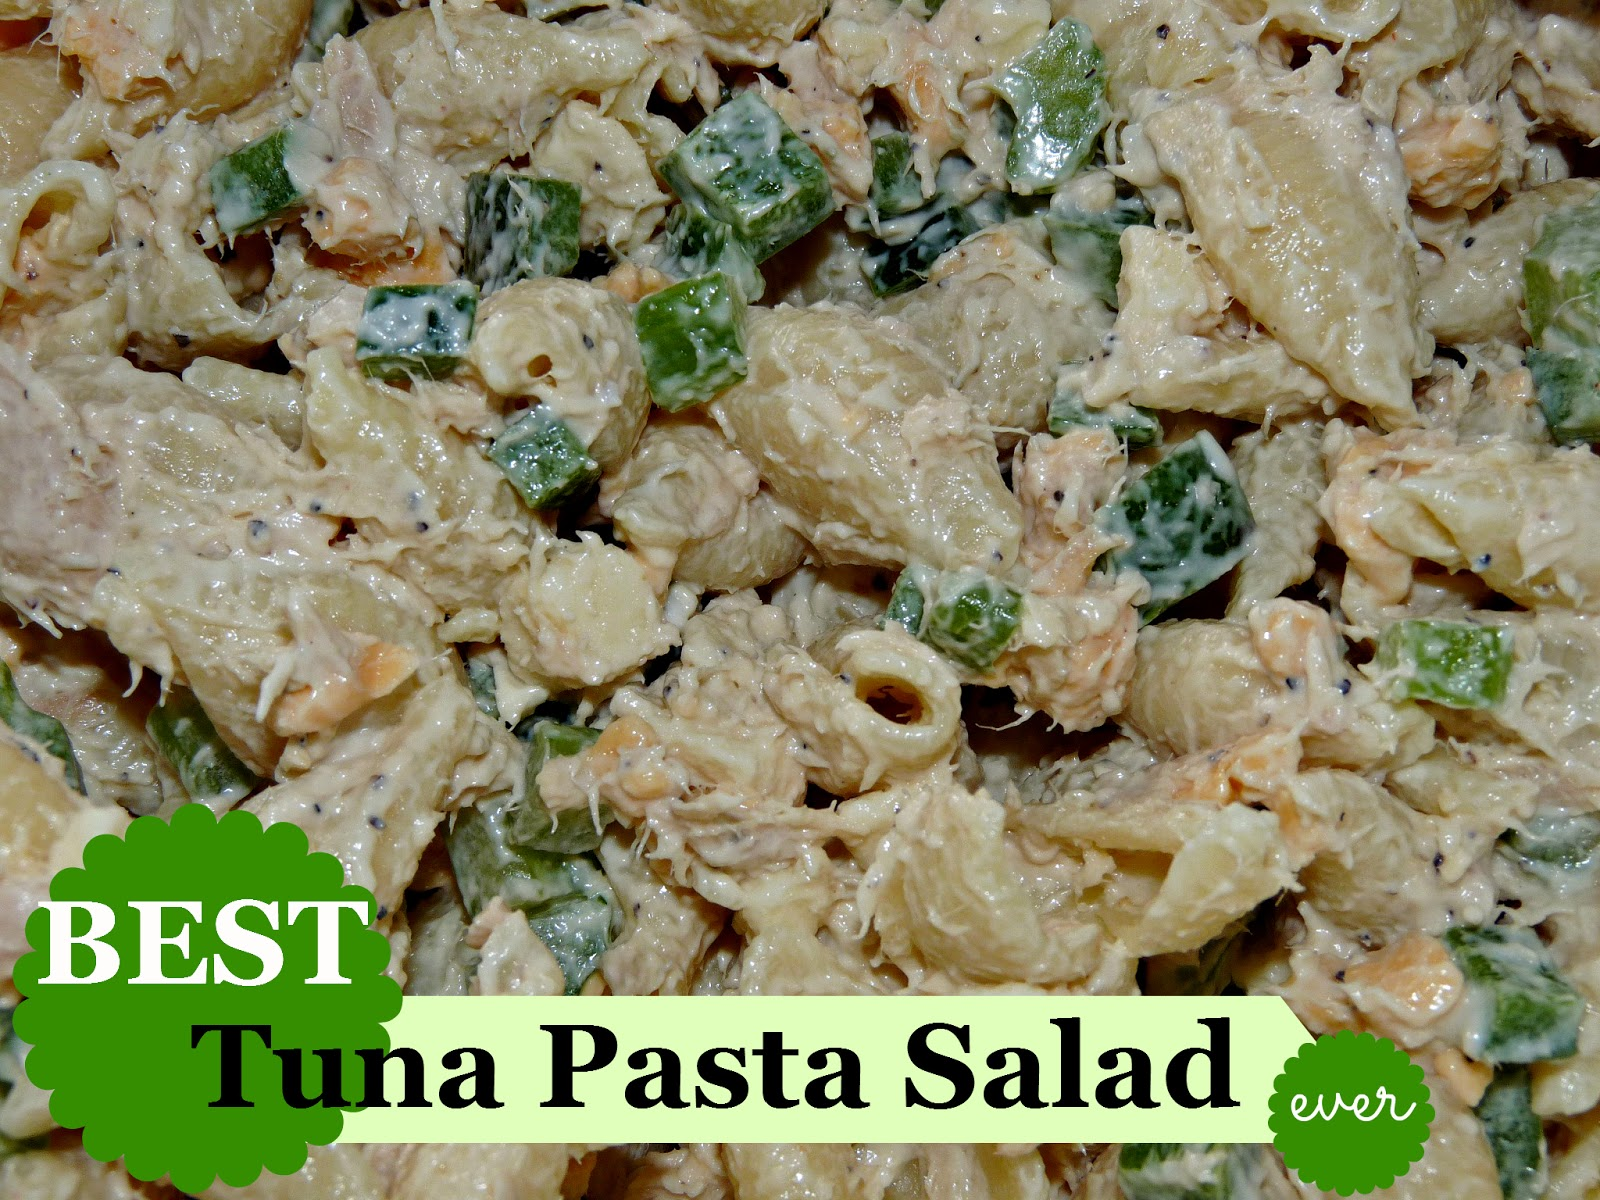 Cold Tuna Macaroni Salad Images & Pictures - Becuo